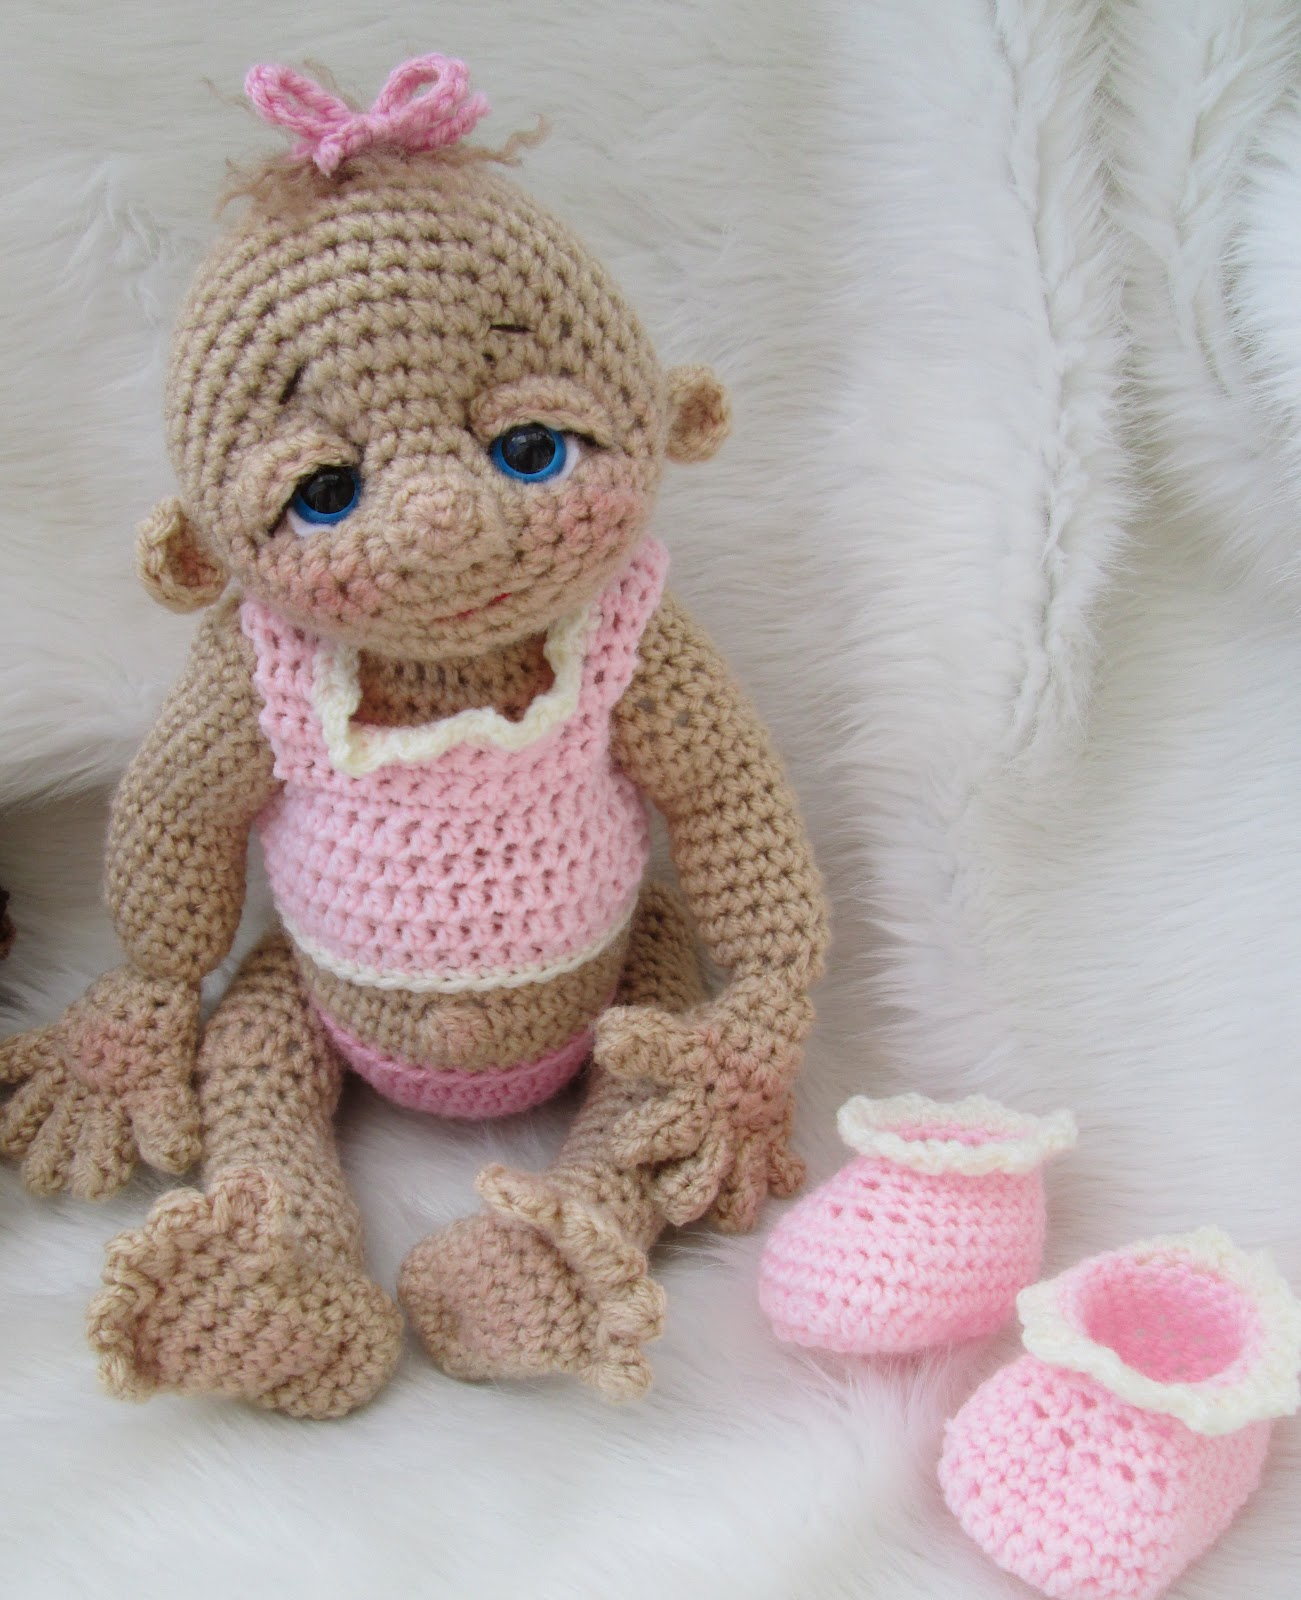 Crochet Doll Pattern Cute : Wool and Whims: So Cute Baby Doll Has Arrived